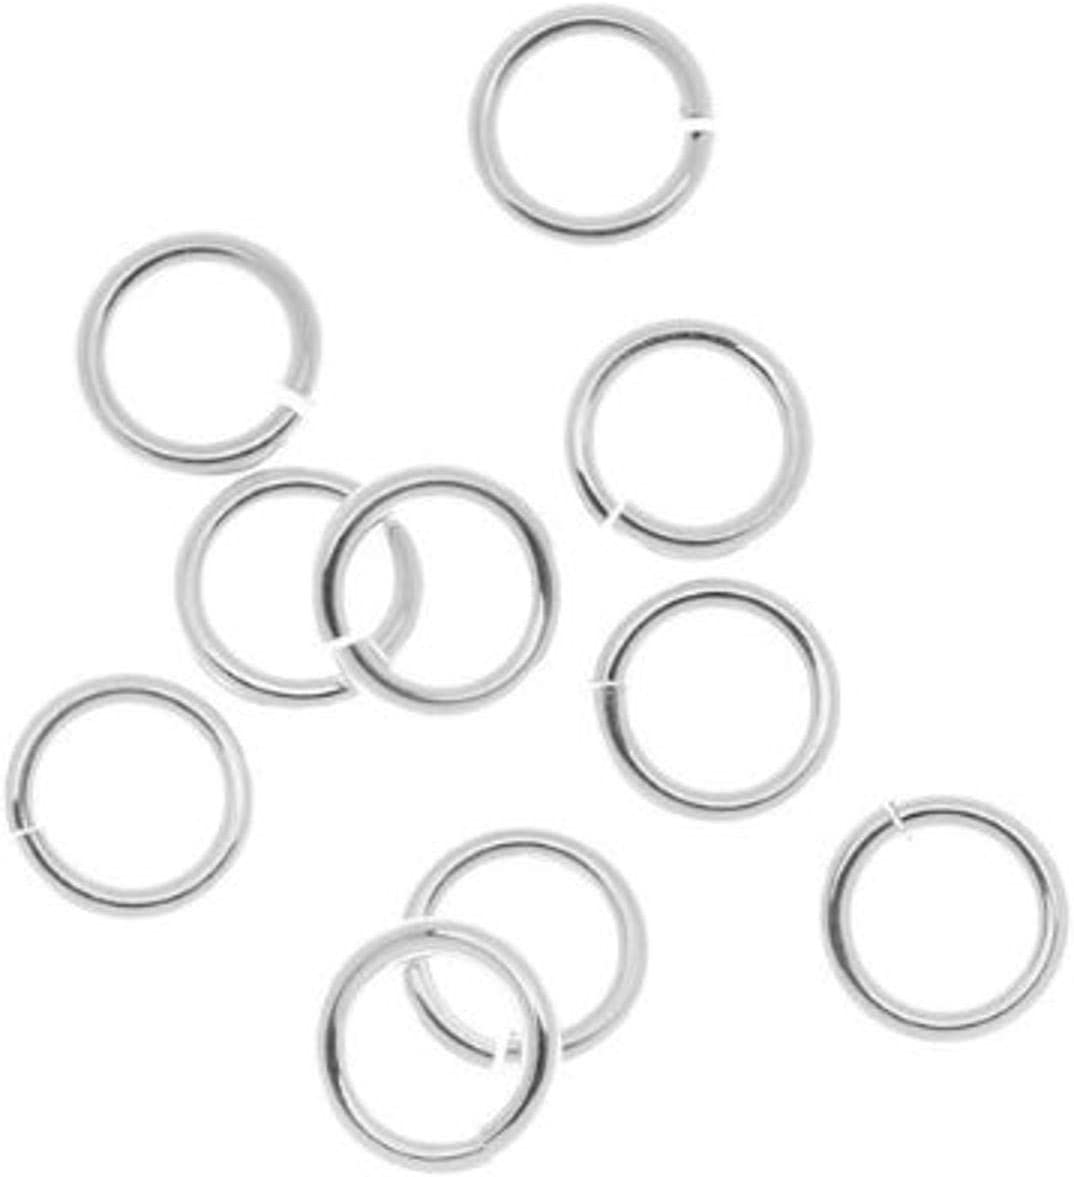 925 Sterling Silver Jump Rings Heavy Round Open 3mm 4mm 5mm 6mm 7mm 8mm 9mm 10mm